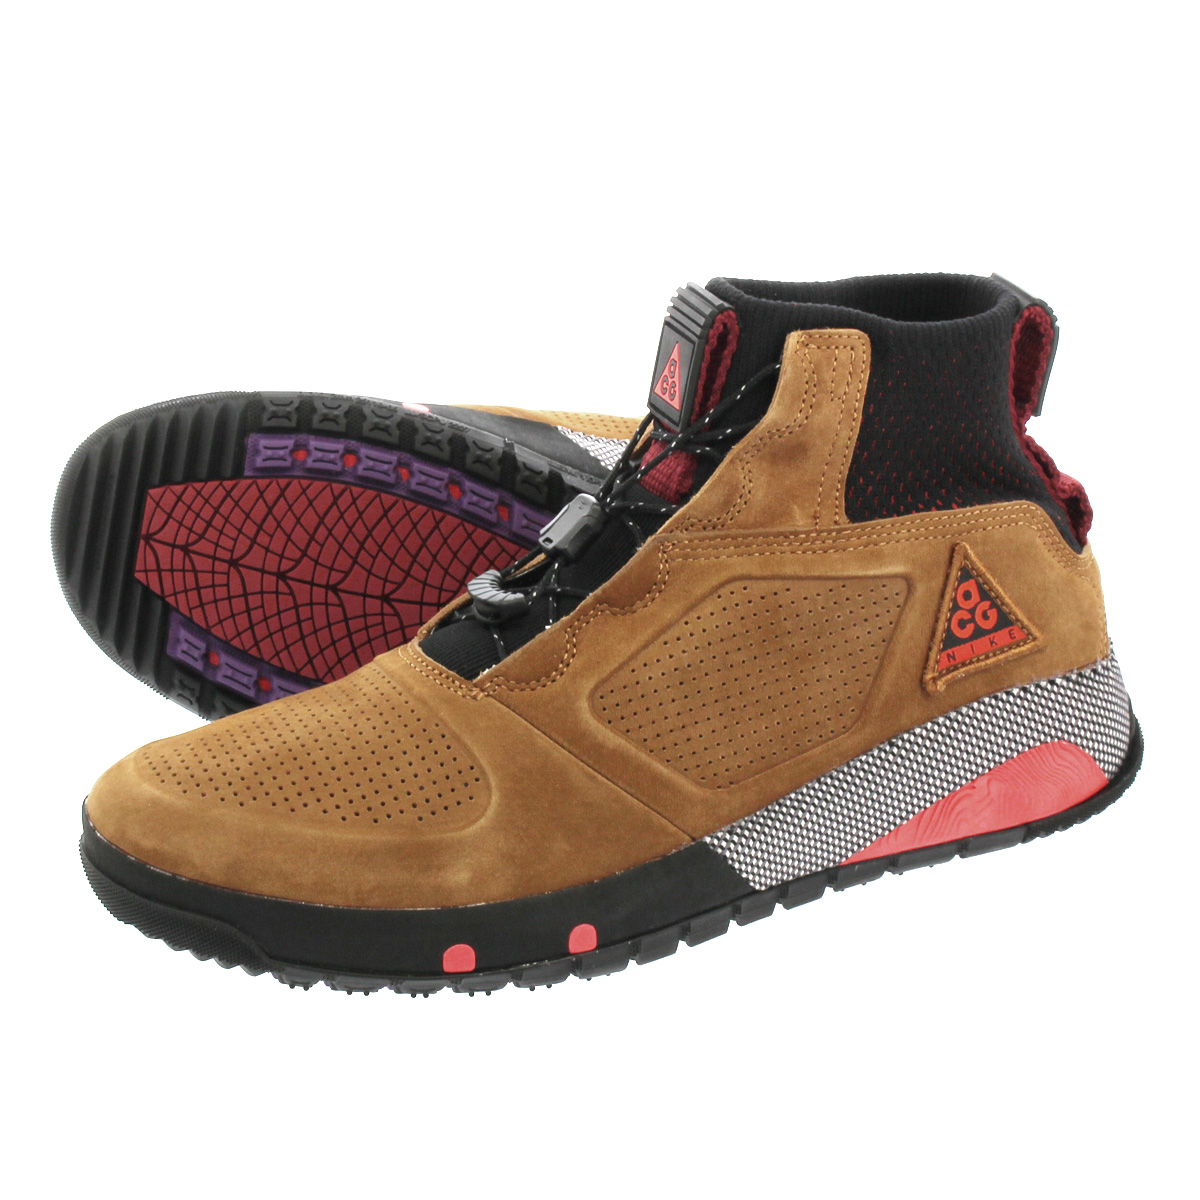 NIKE ACG RUCKEL RIDGE ナイキ ACG ラックルリッジ LIGHT BRITISH TAN/BLACK/RED aq9333-226